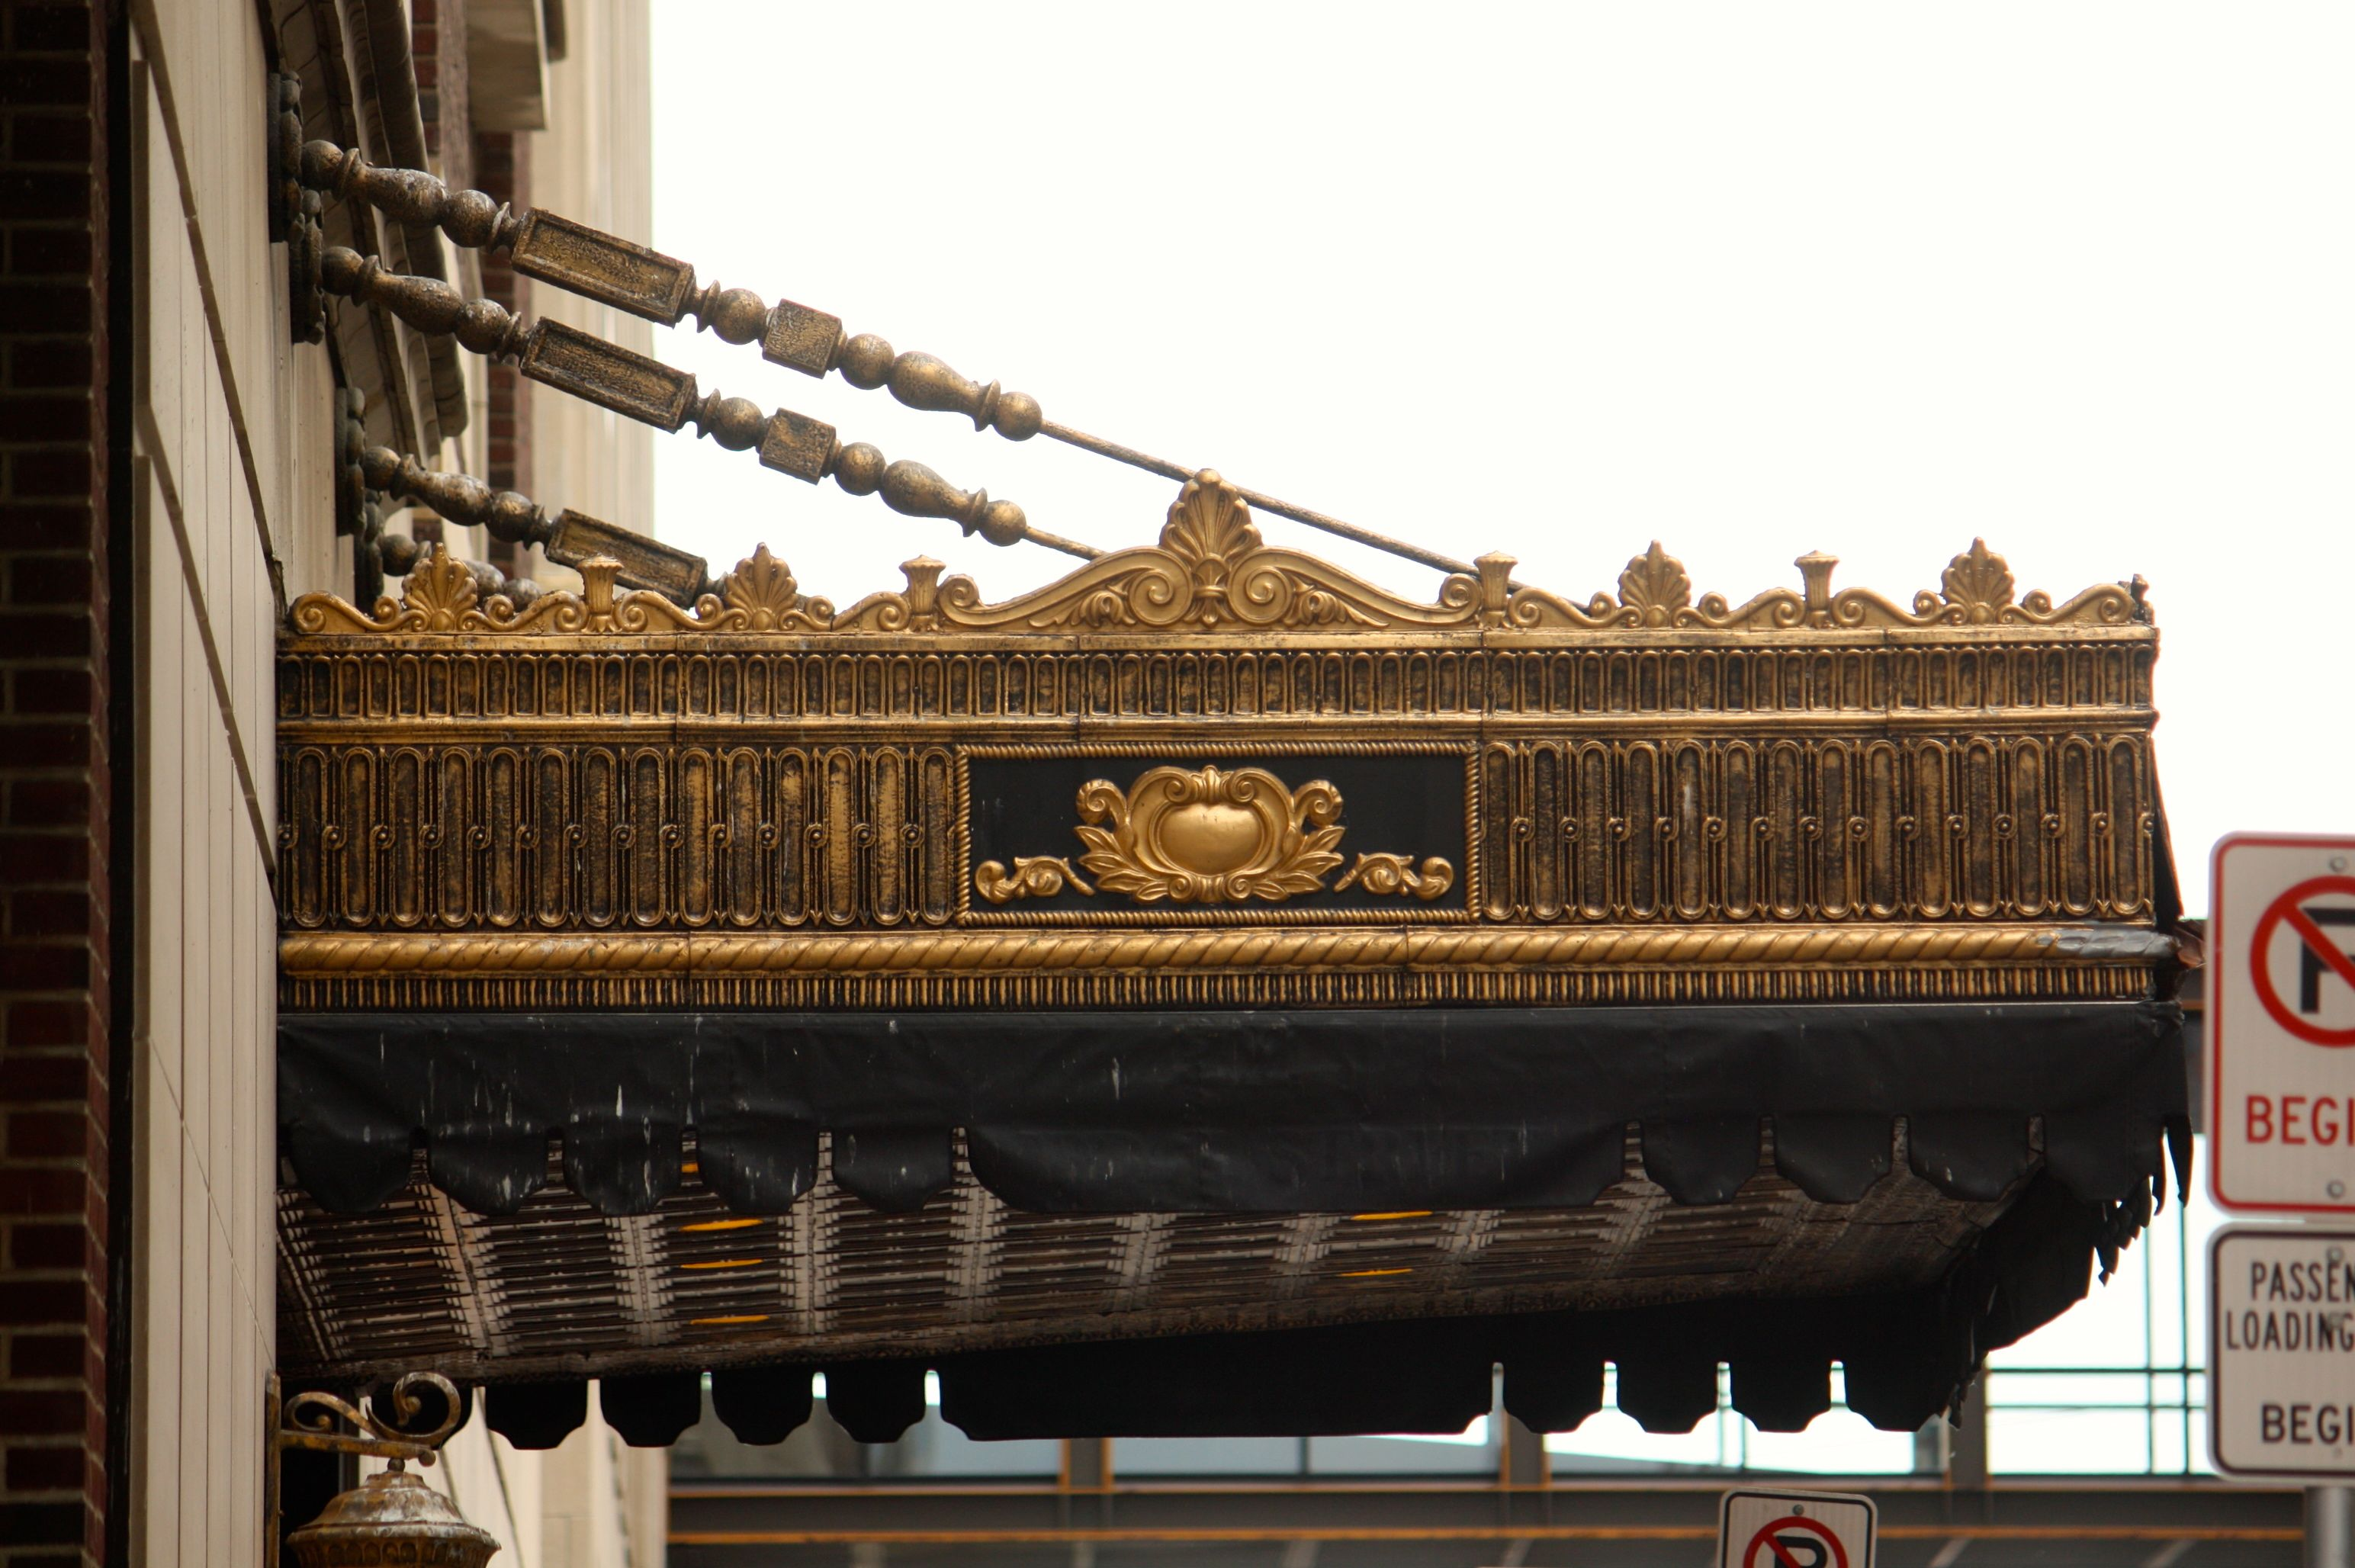 A close look at the ornate awning over the entrance of the St. Paul Athletic Club/Hotel 340.